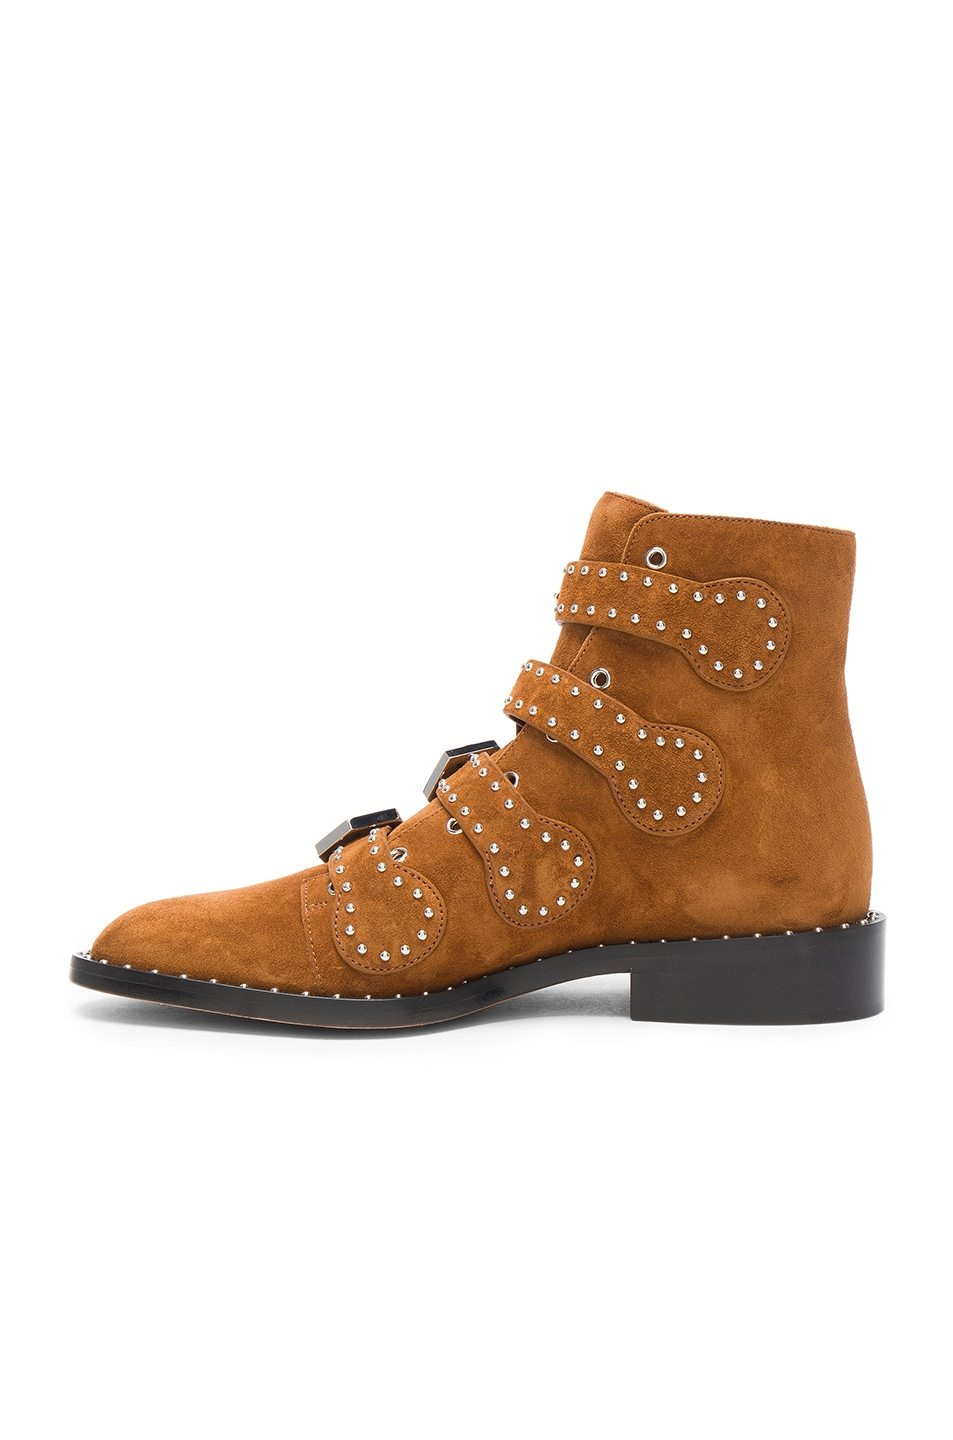 Image 5 of Givenchy Elegant Studded Suede Ankle Boots in Caramel